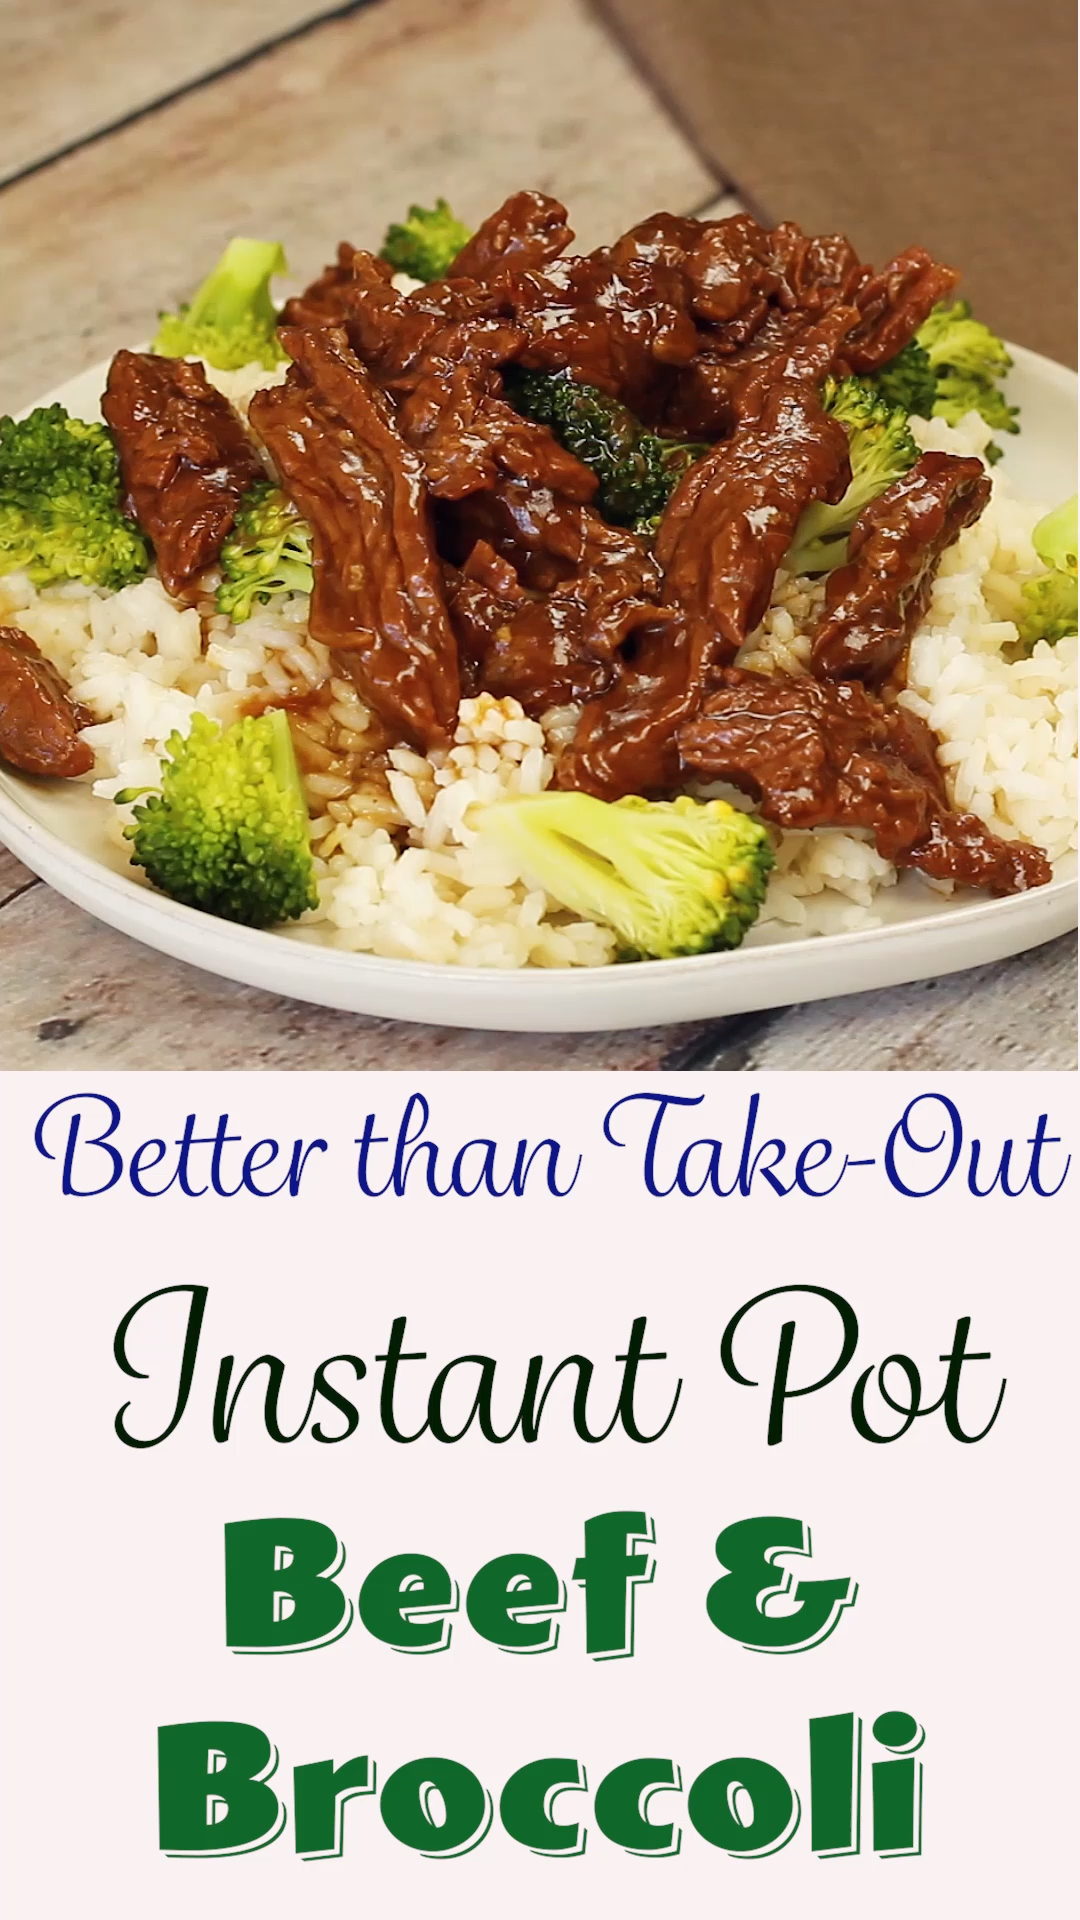 Photo of Instant Pot Beef and Broccoli